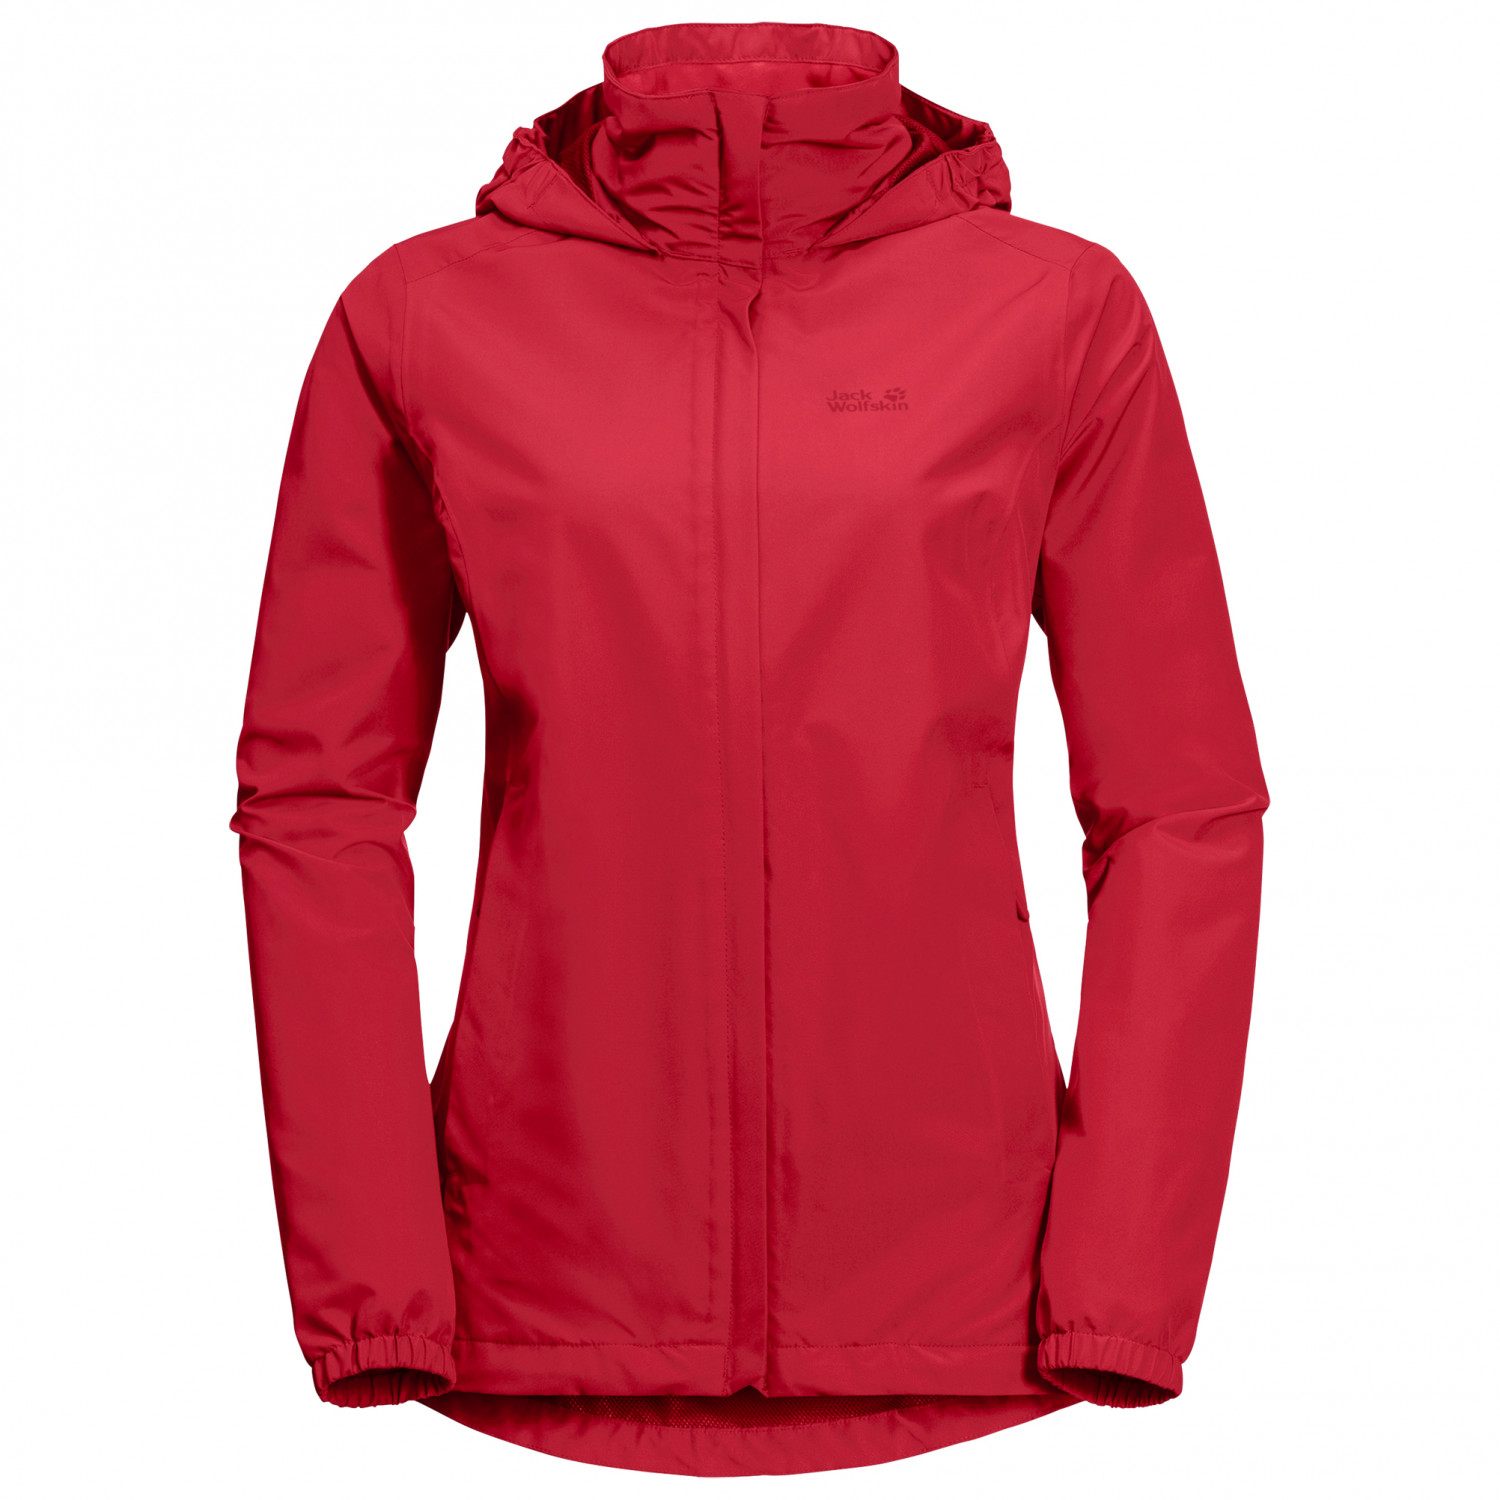 Jack Wolfskin Women's Stormy Point Jacket Regenjacke